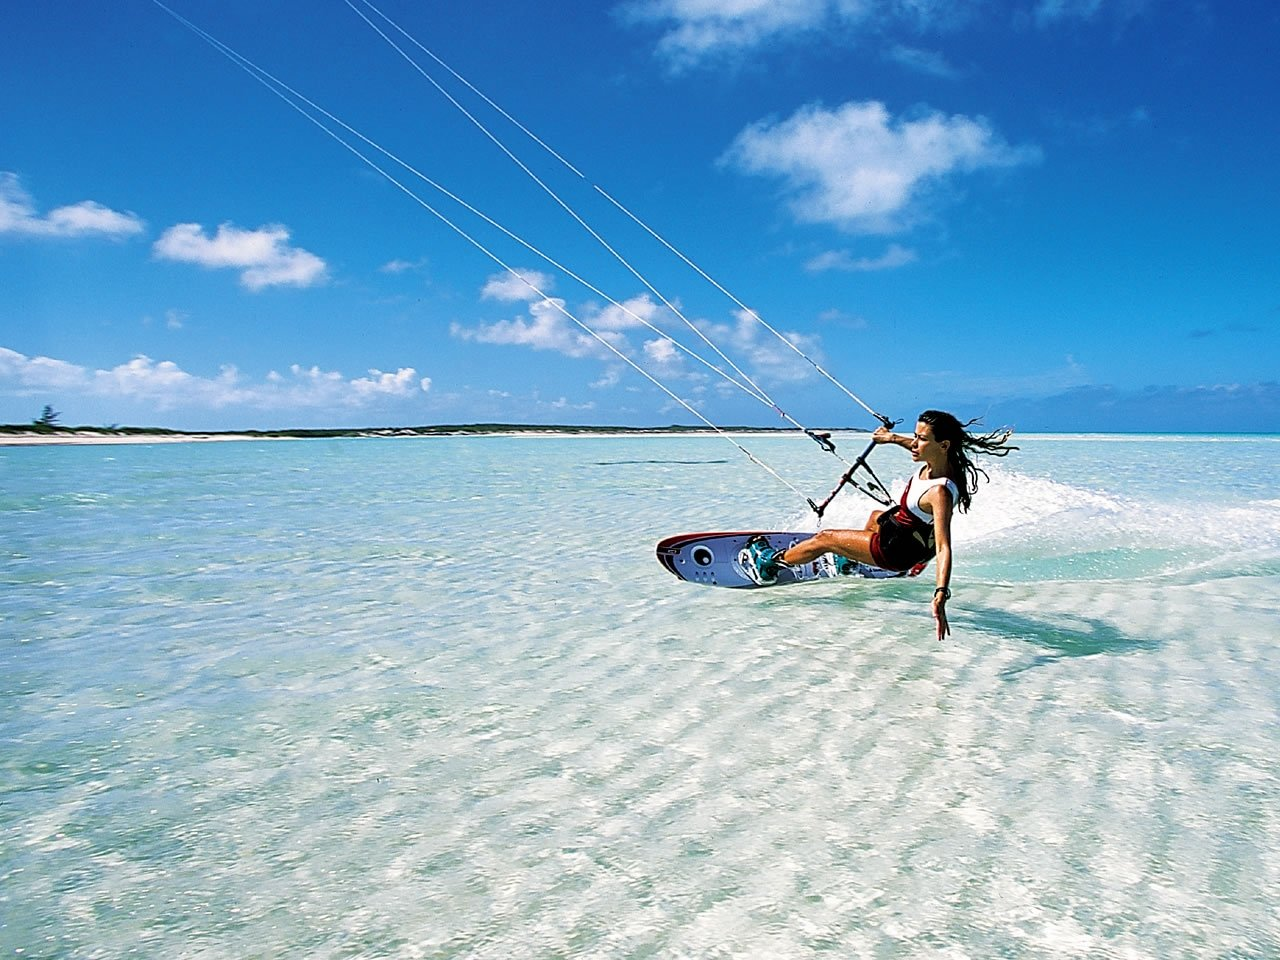 1280x960 - Kitesurfing Wallpapers 18